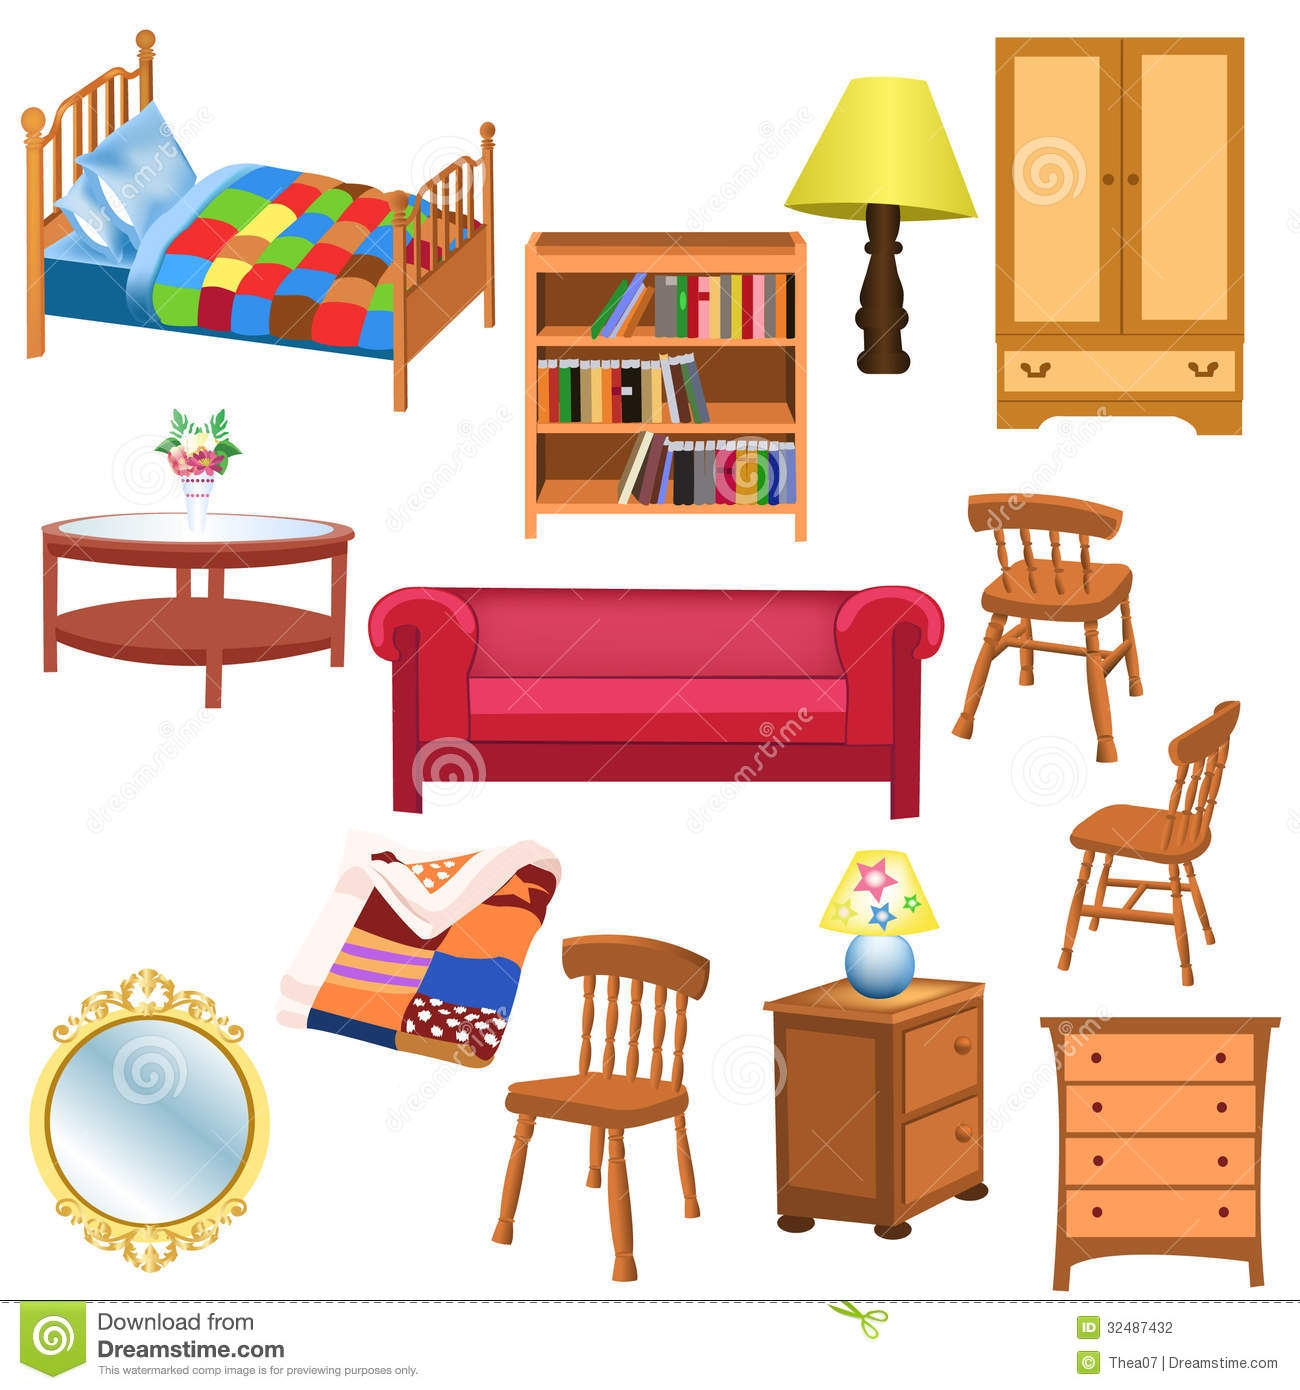 Things In The House Clipart.